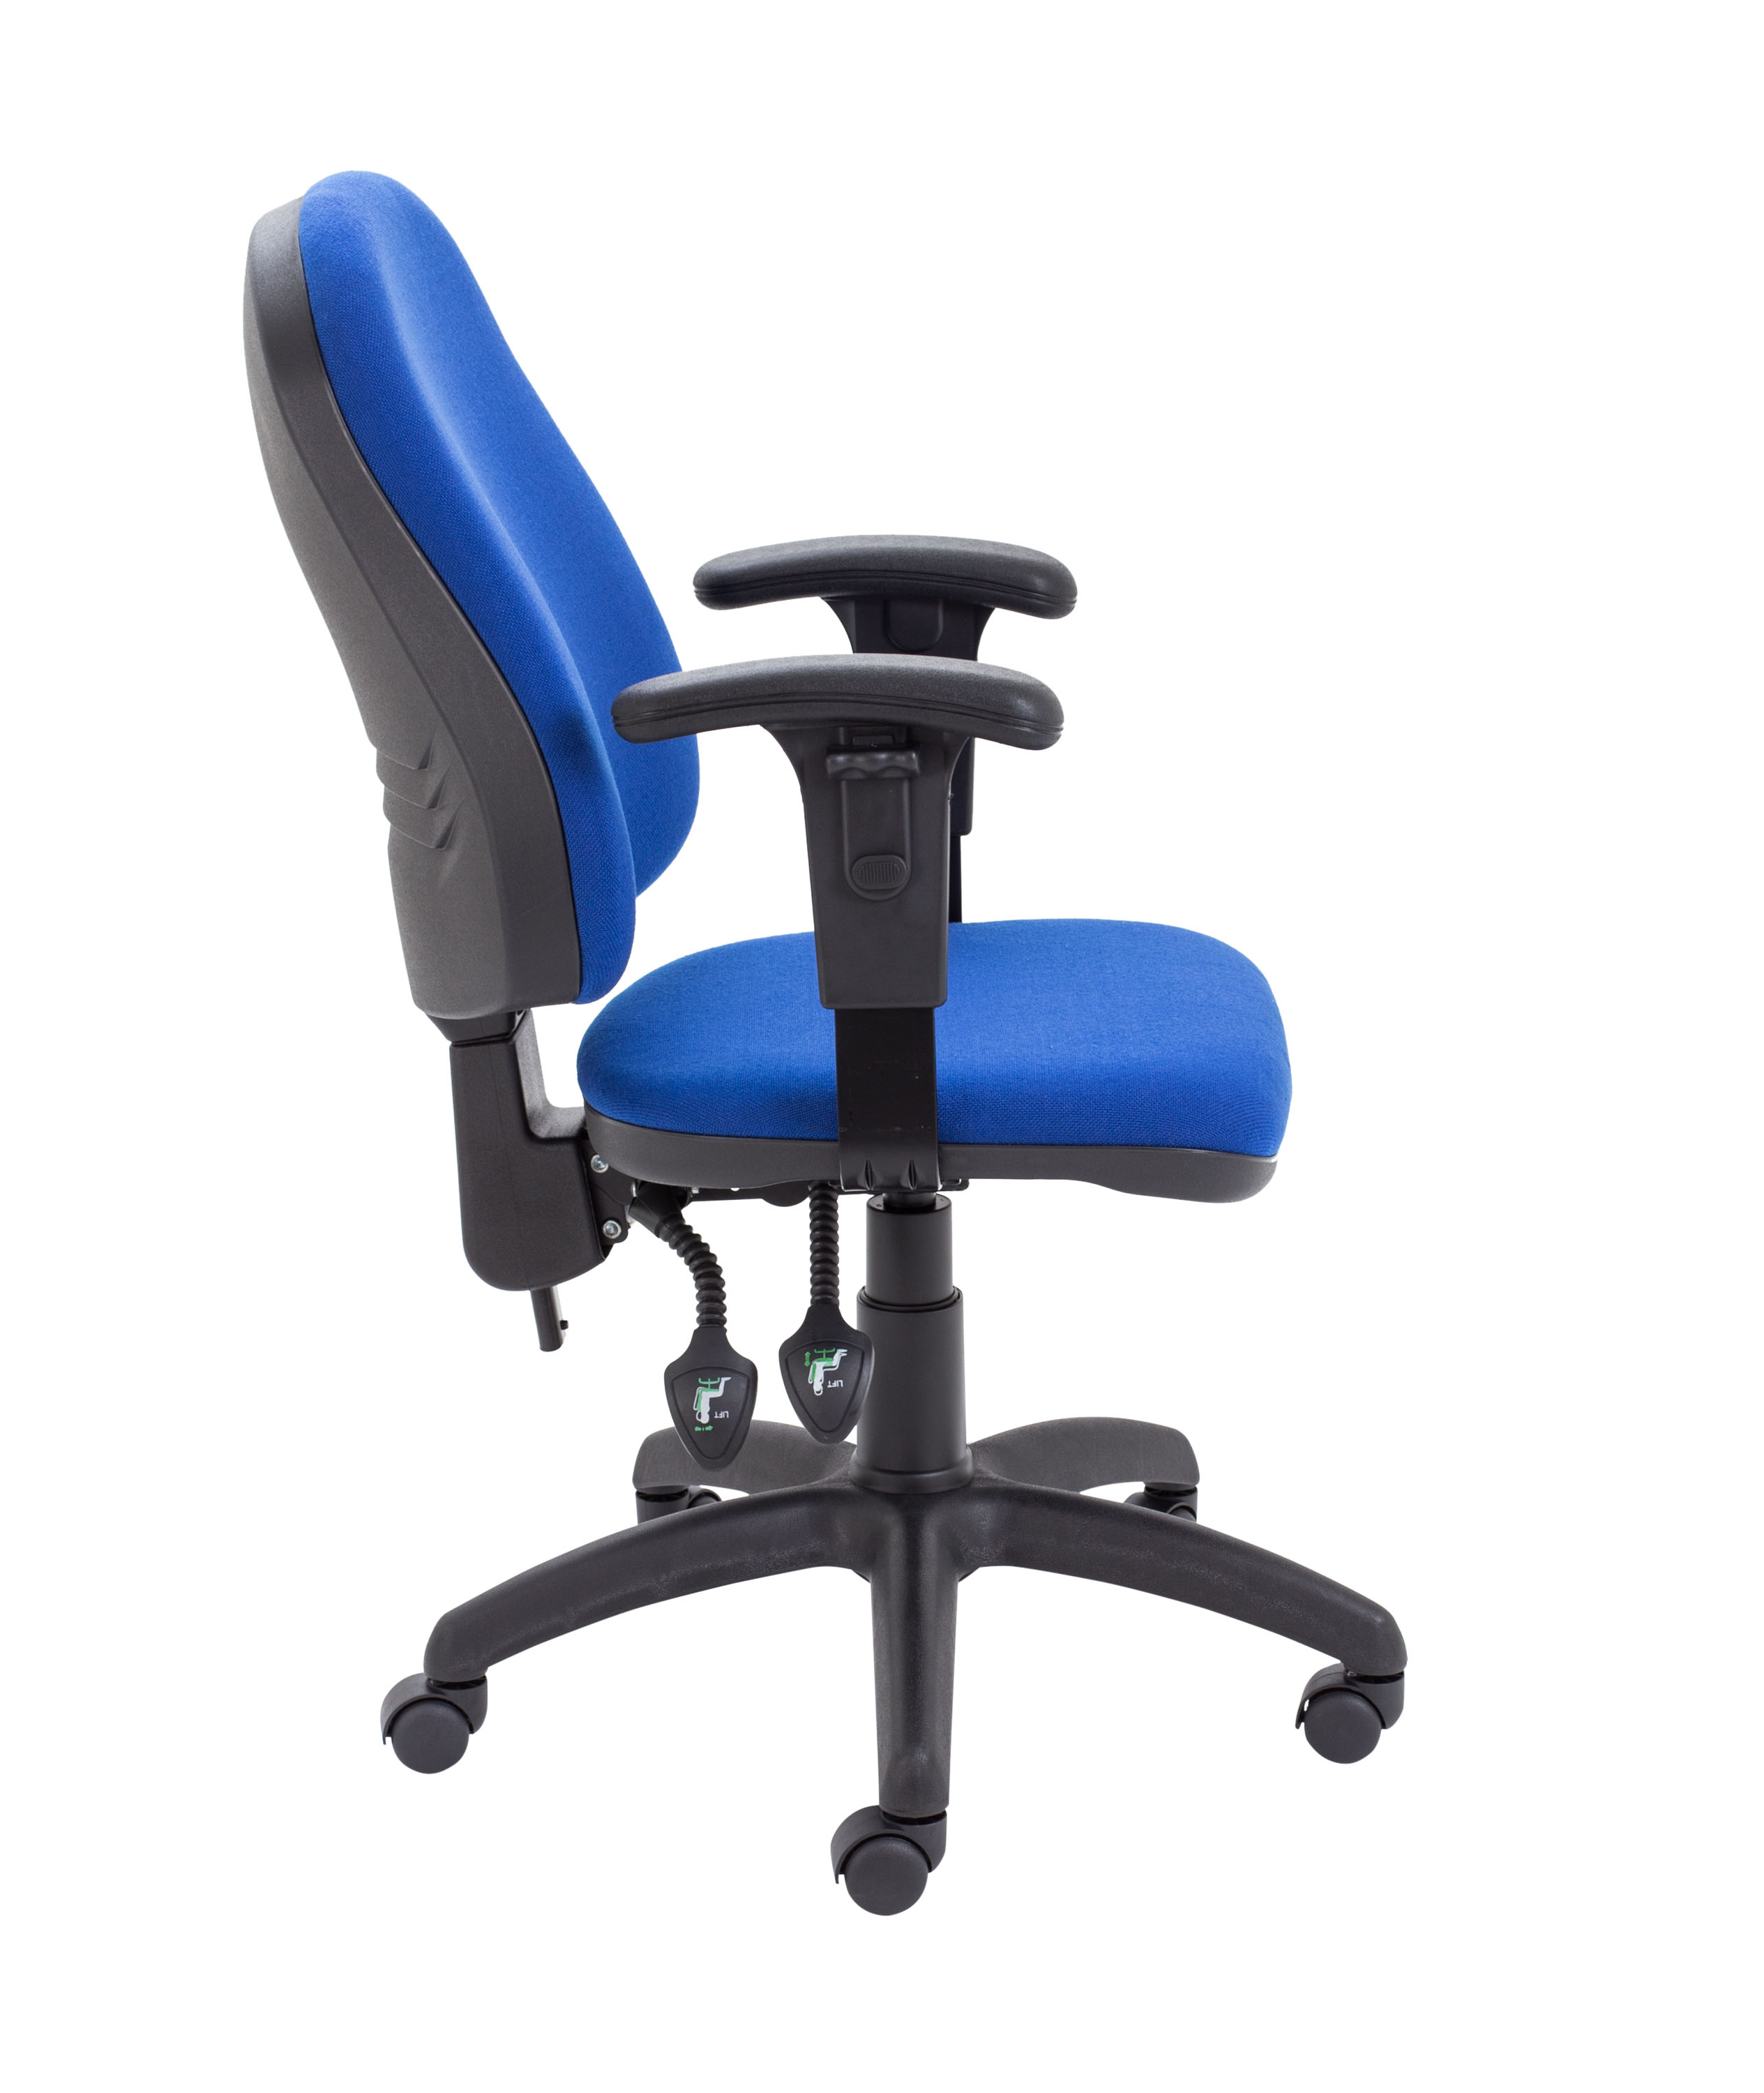 ergonomic chair levers hanging etsy 2 lever operator blue 43 adjustable arms